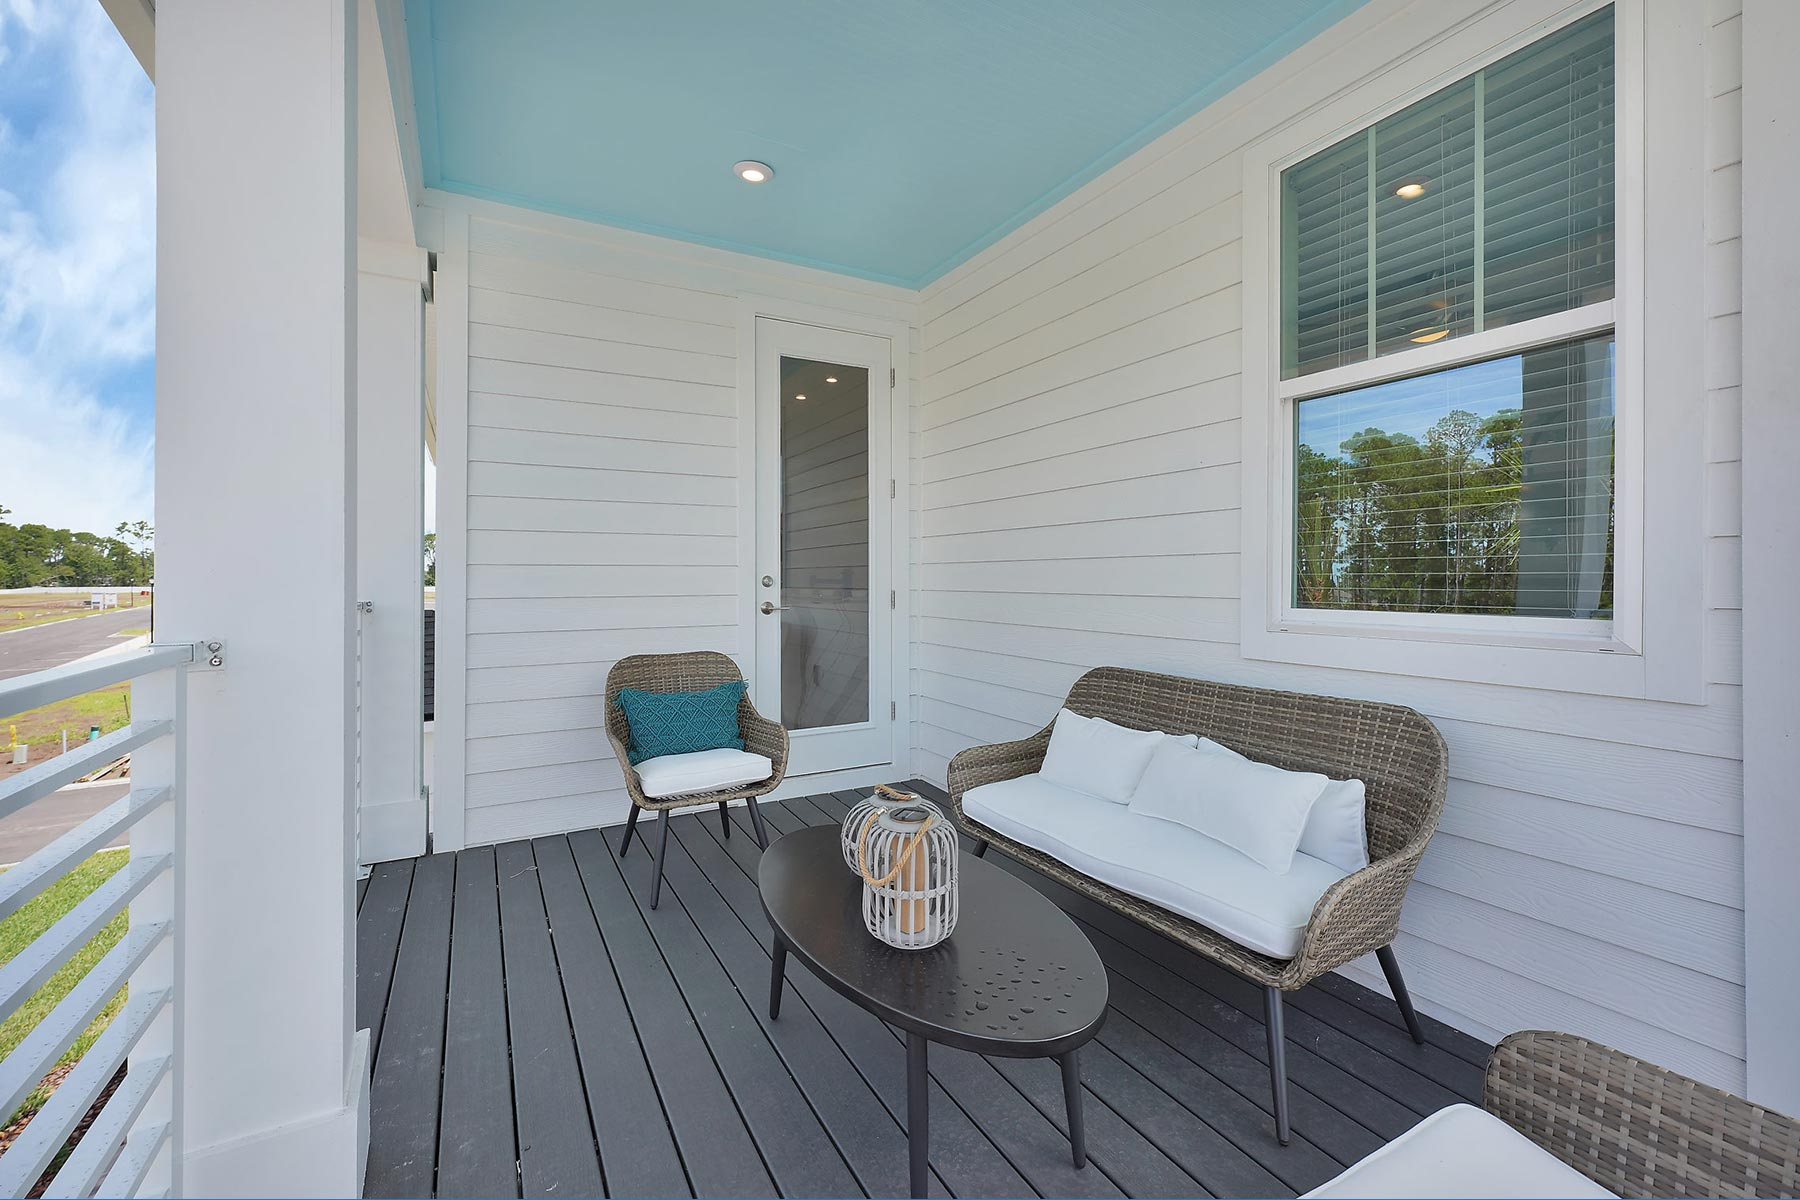 Kai Plan Patio at Pablo Cove in Jacksonville Florida by Mattamy Homes